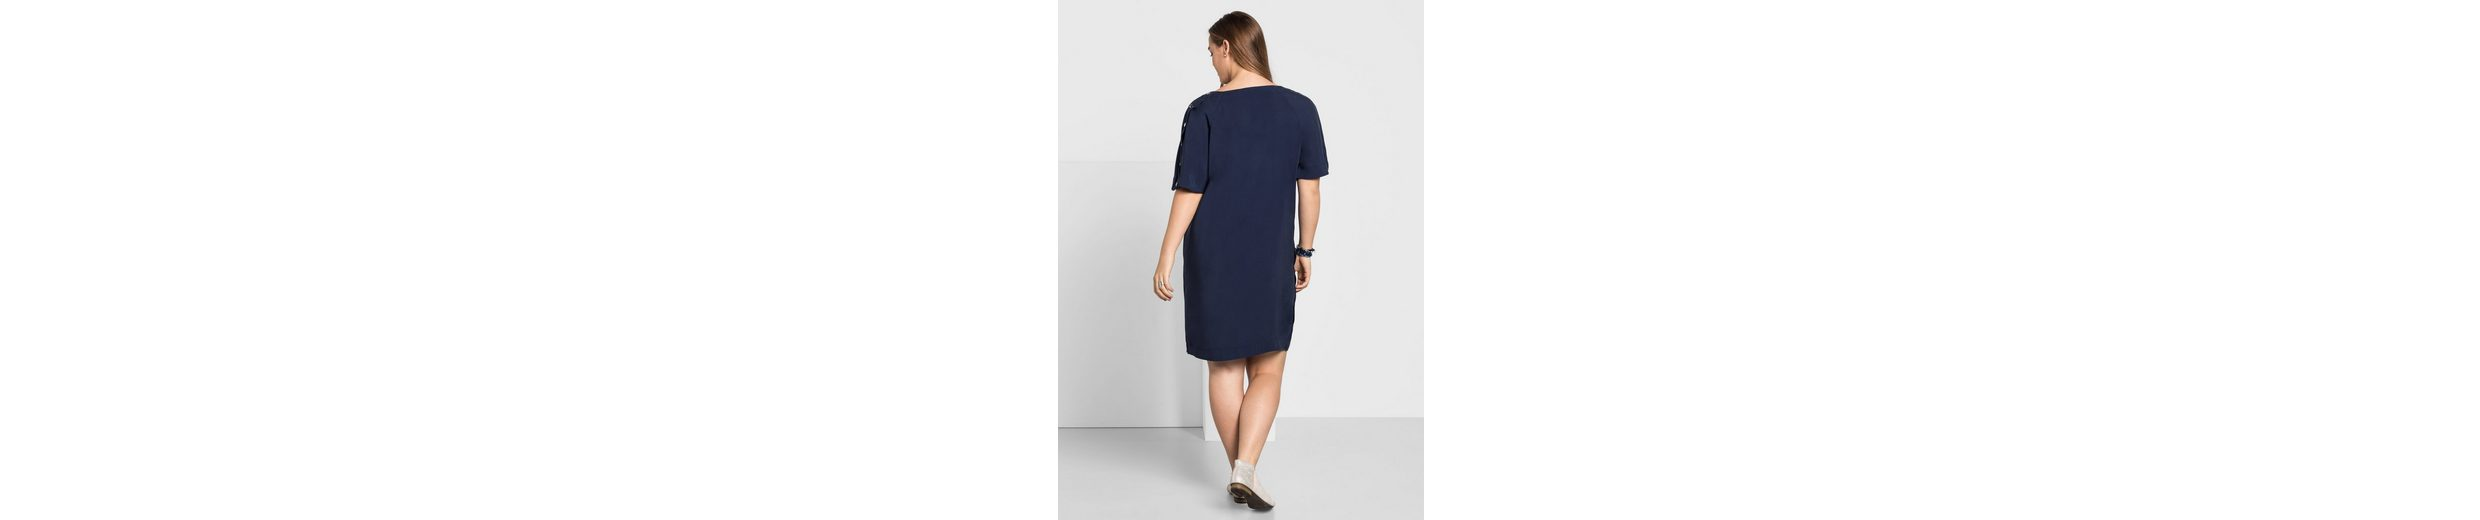 sheeGOTit Sommerkleid, Oversized-Form